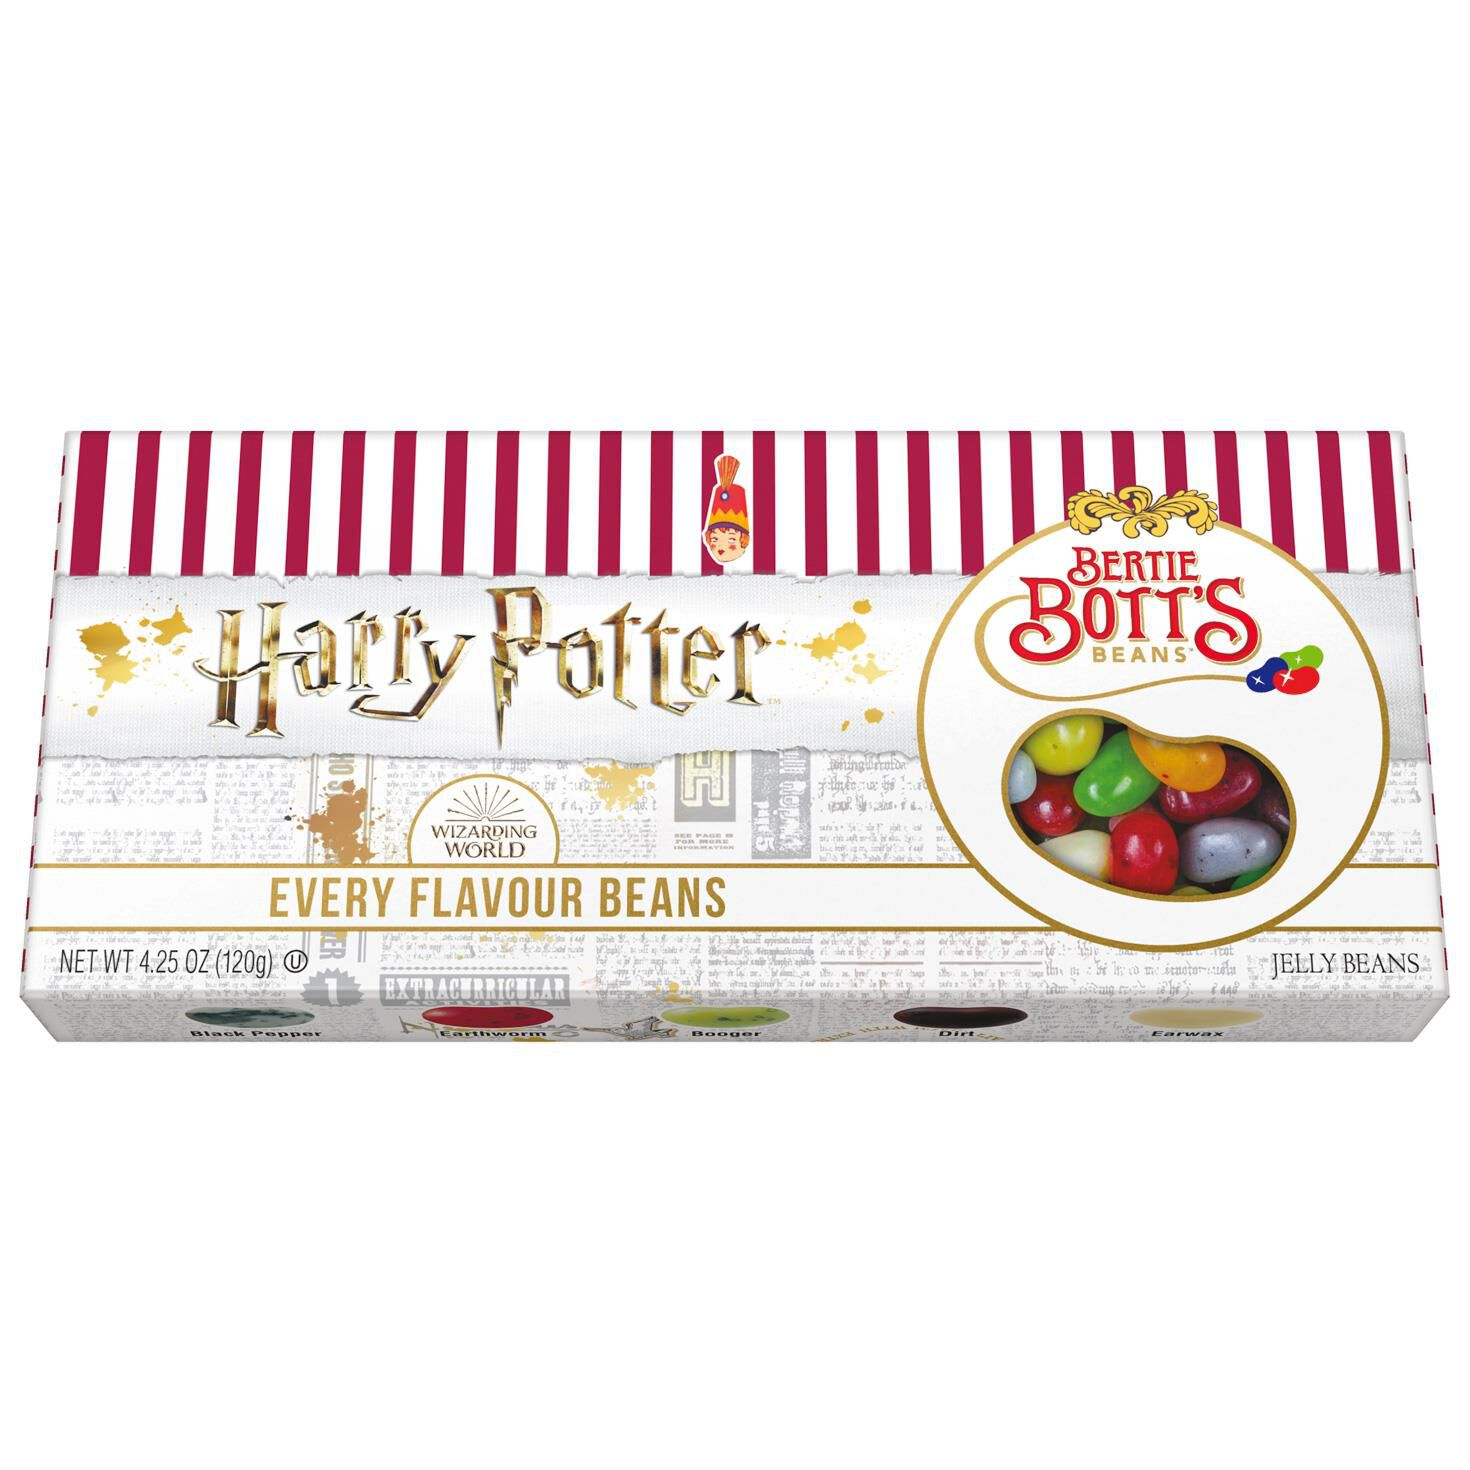 graphic about Bertie Botts Every Flavor Beans Printable titled Jelly Abdomen Harry Potter Bertie Botts Each and every Flavour Beans, 4.25 oz.